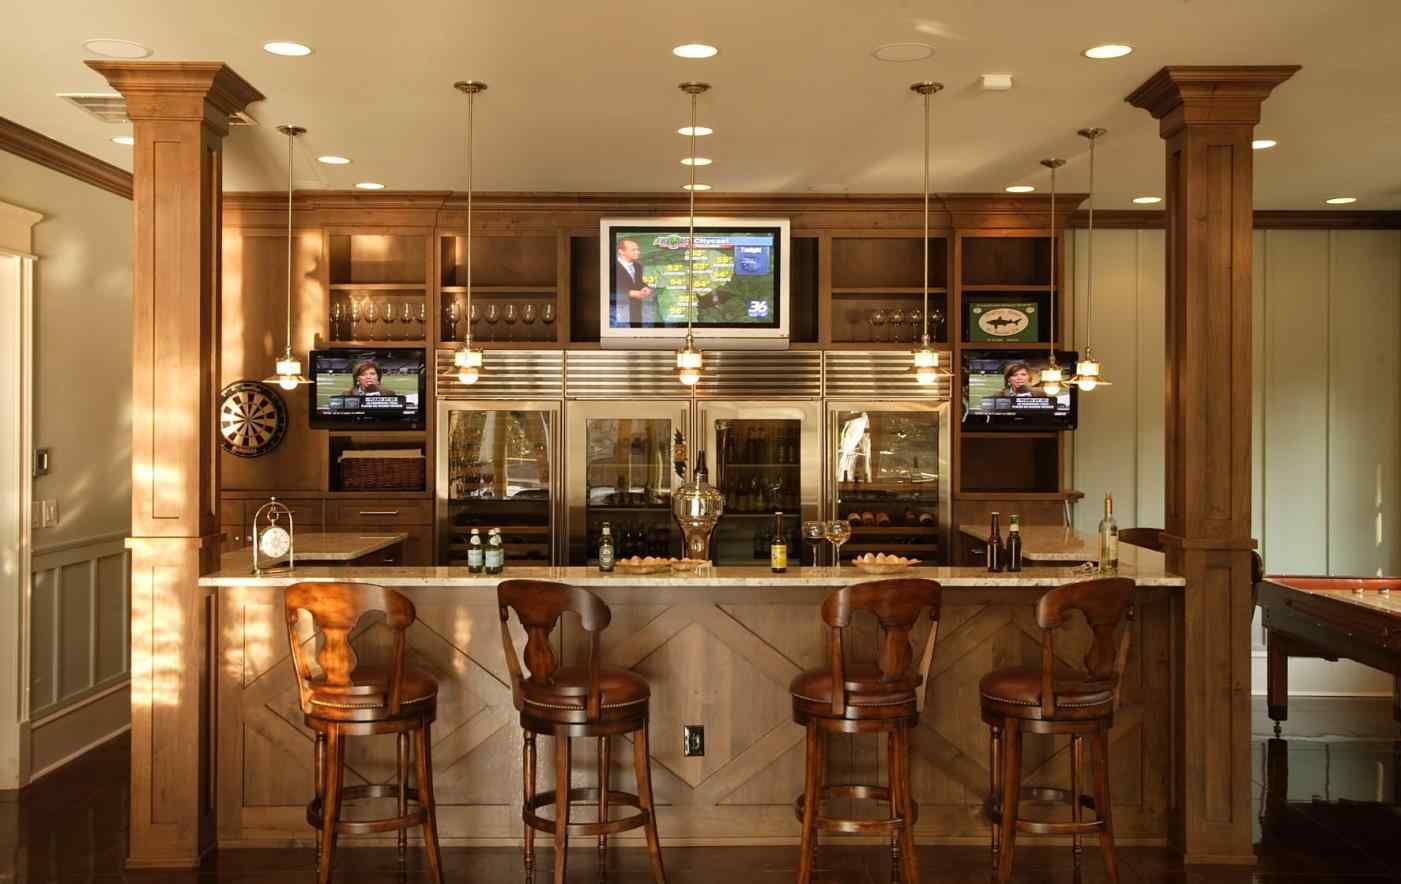 New simple home bar plans at 5k5info Kitchen ideas – Simple Home Bar Plans